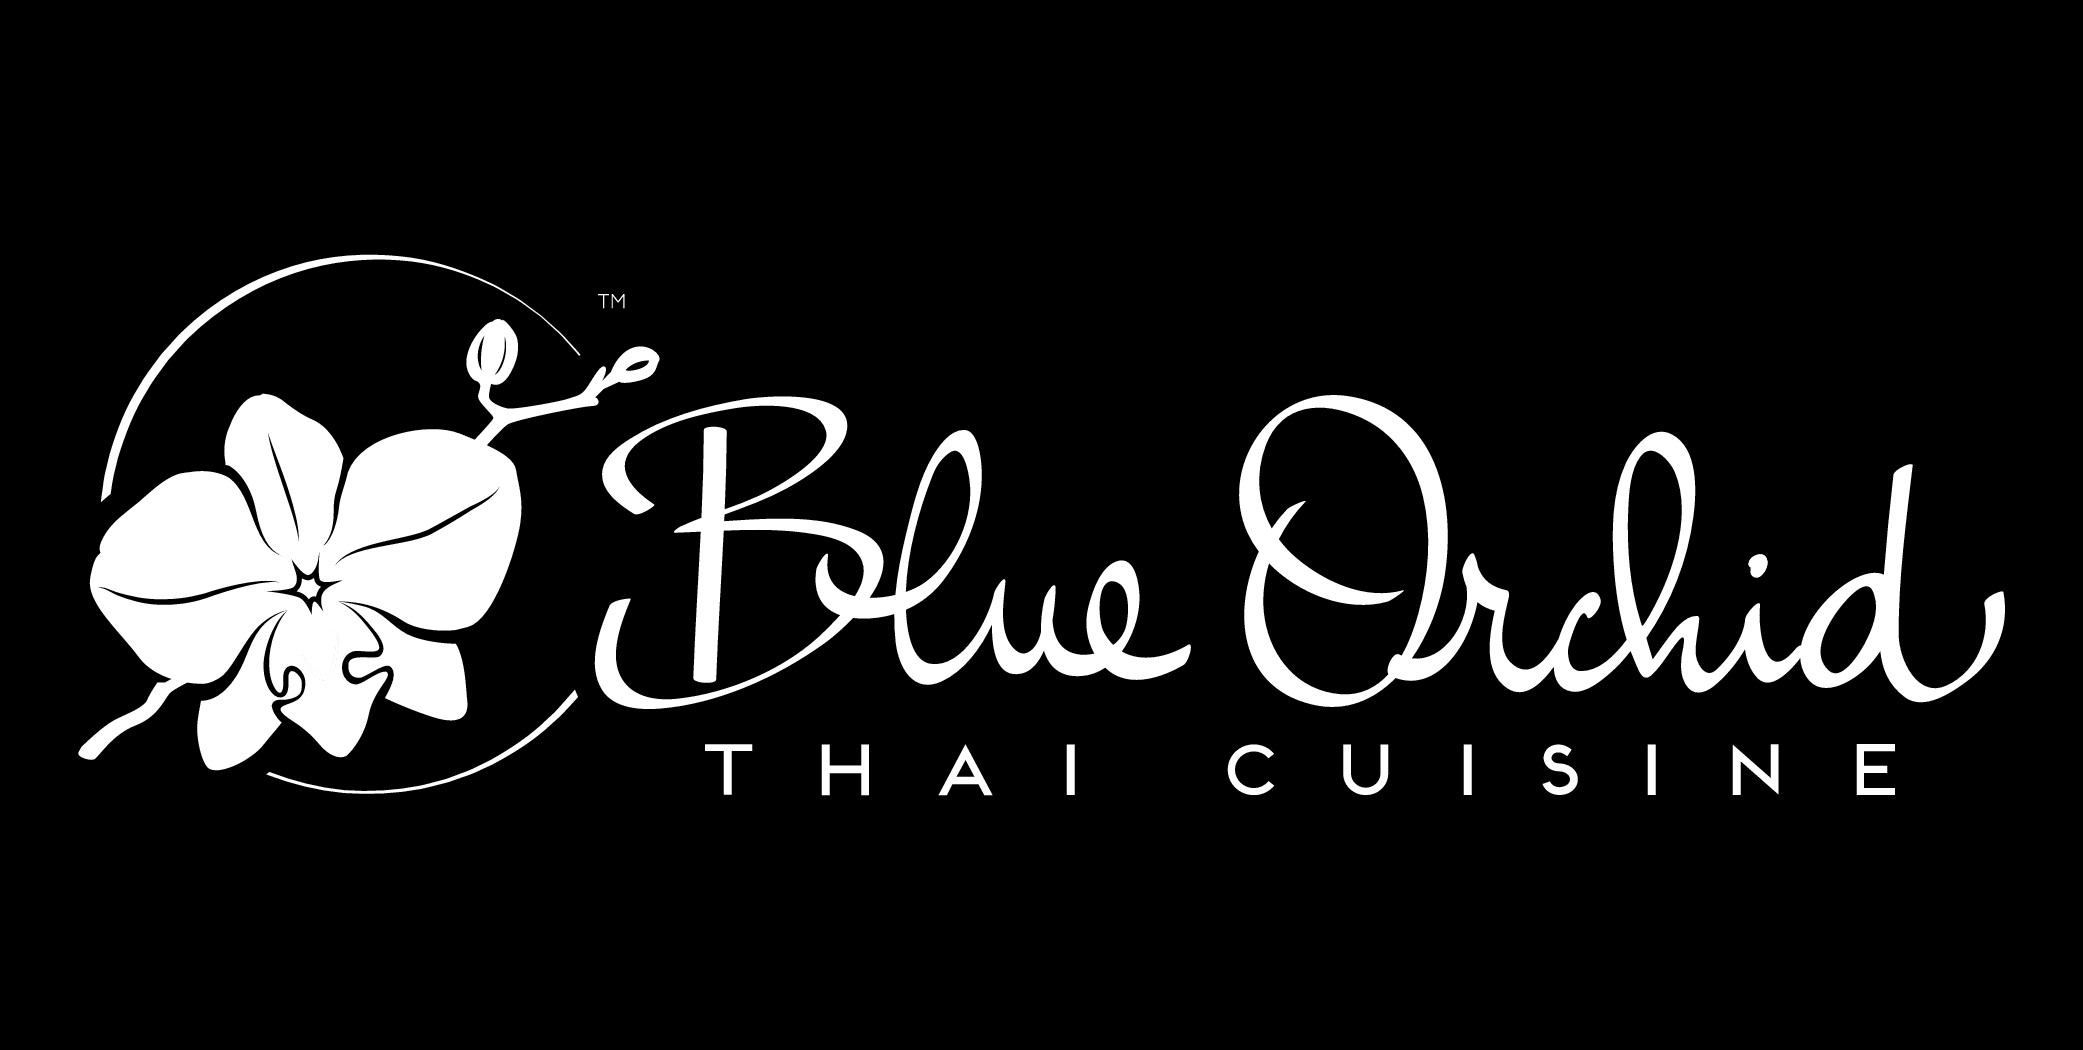 Minor tweaks to files provided for Blue Orchid